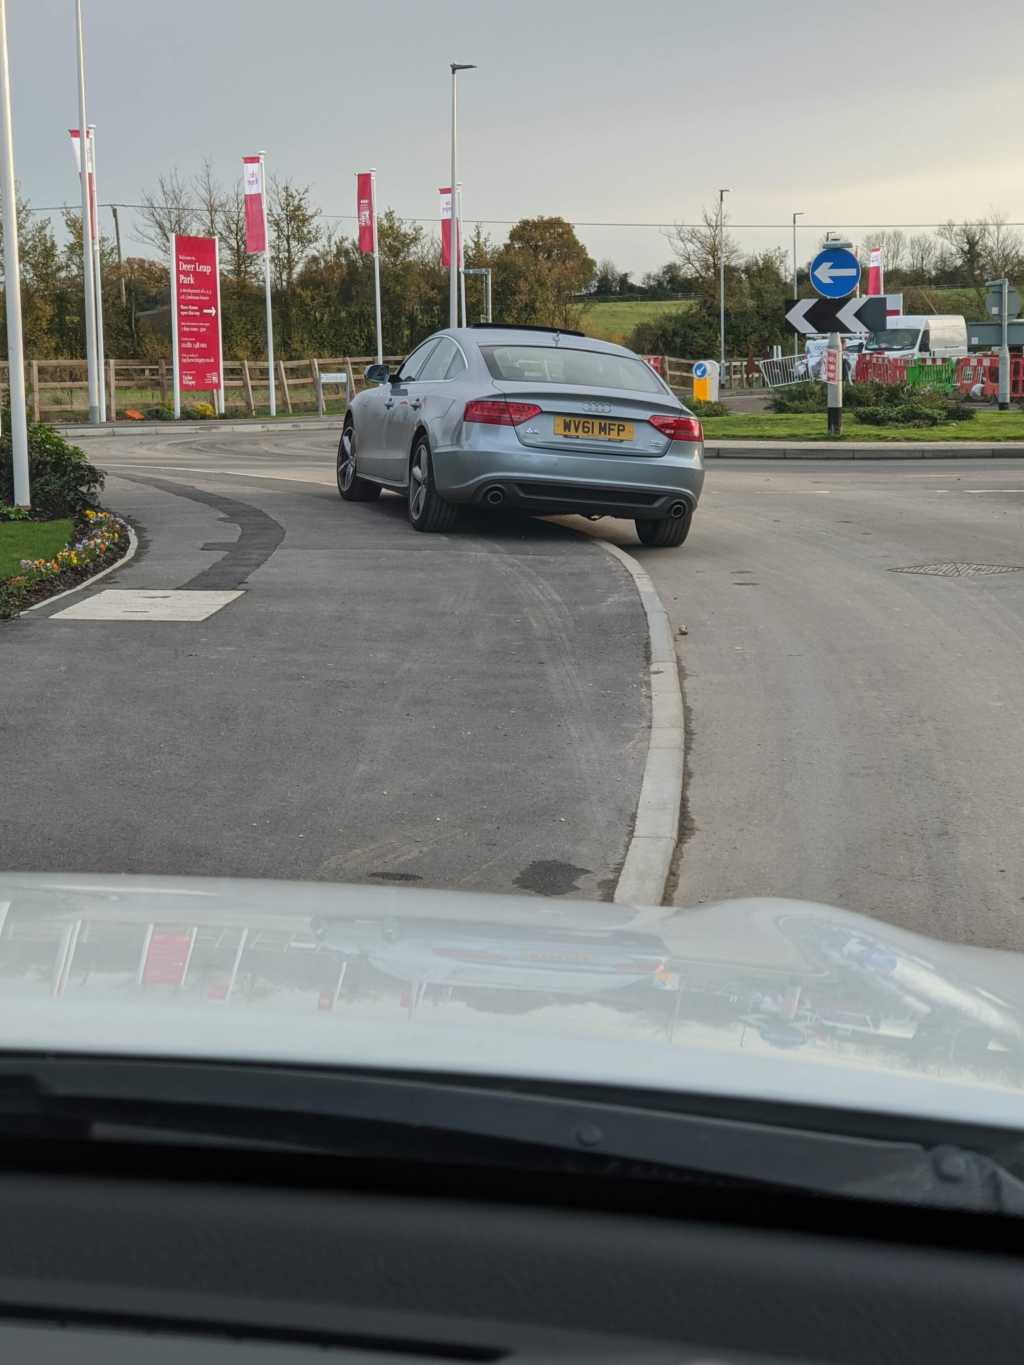 WV61 MFP displaying Inconsiderate Parking